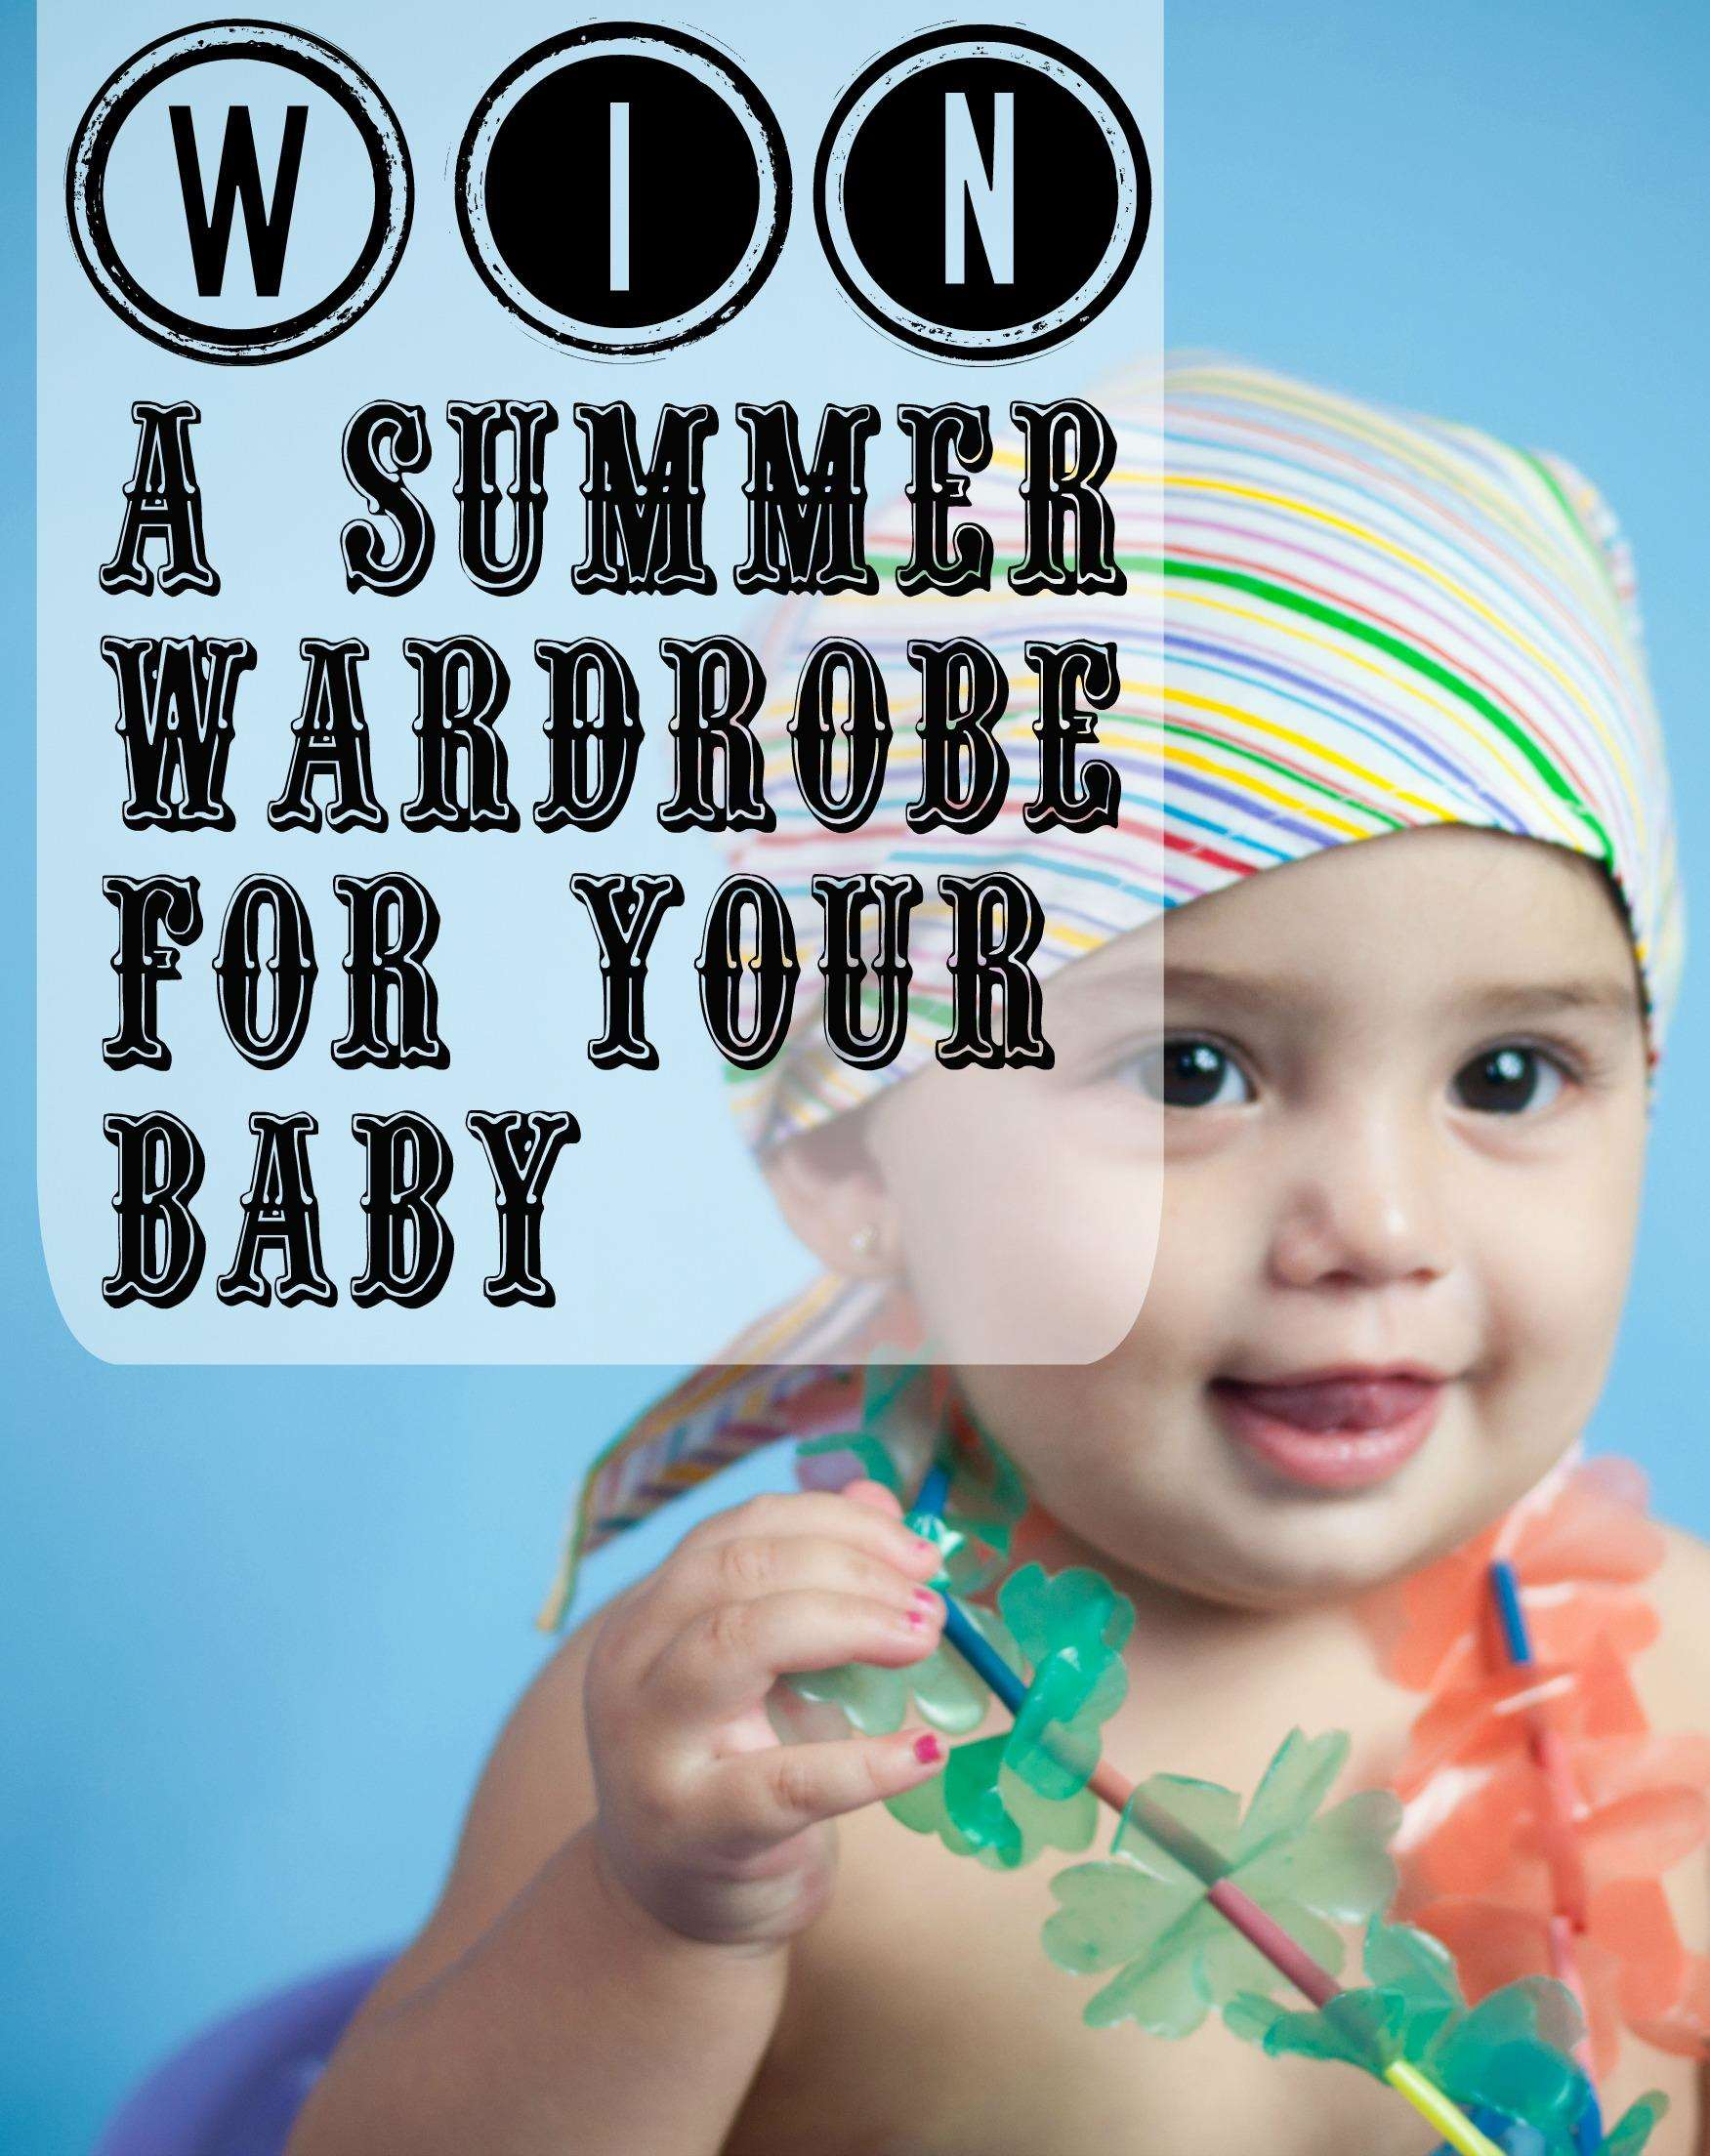 WIN a wardrobe of summer baby clothing!, Summer Baby Clothing%, uncategorised%